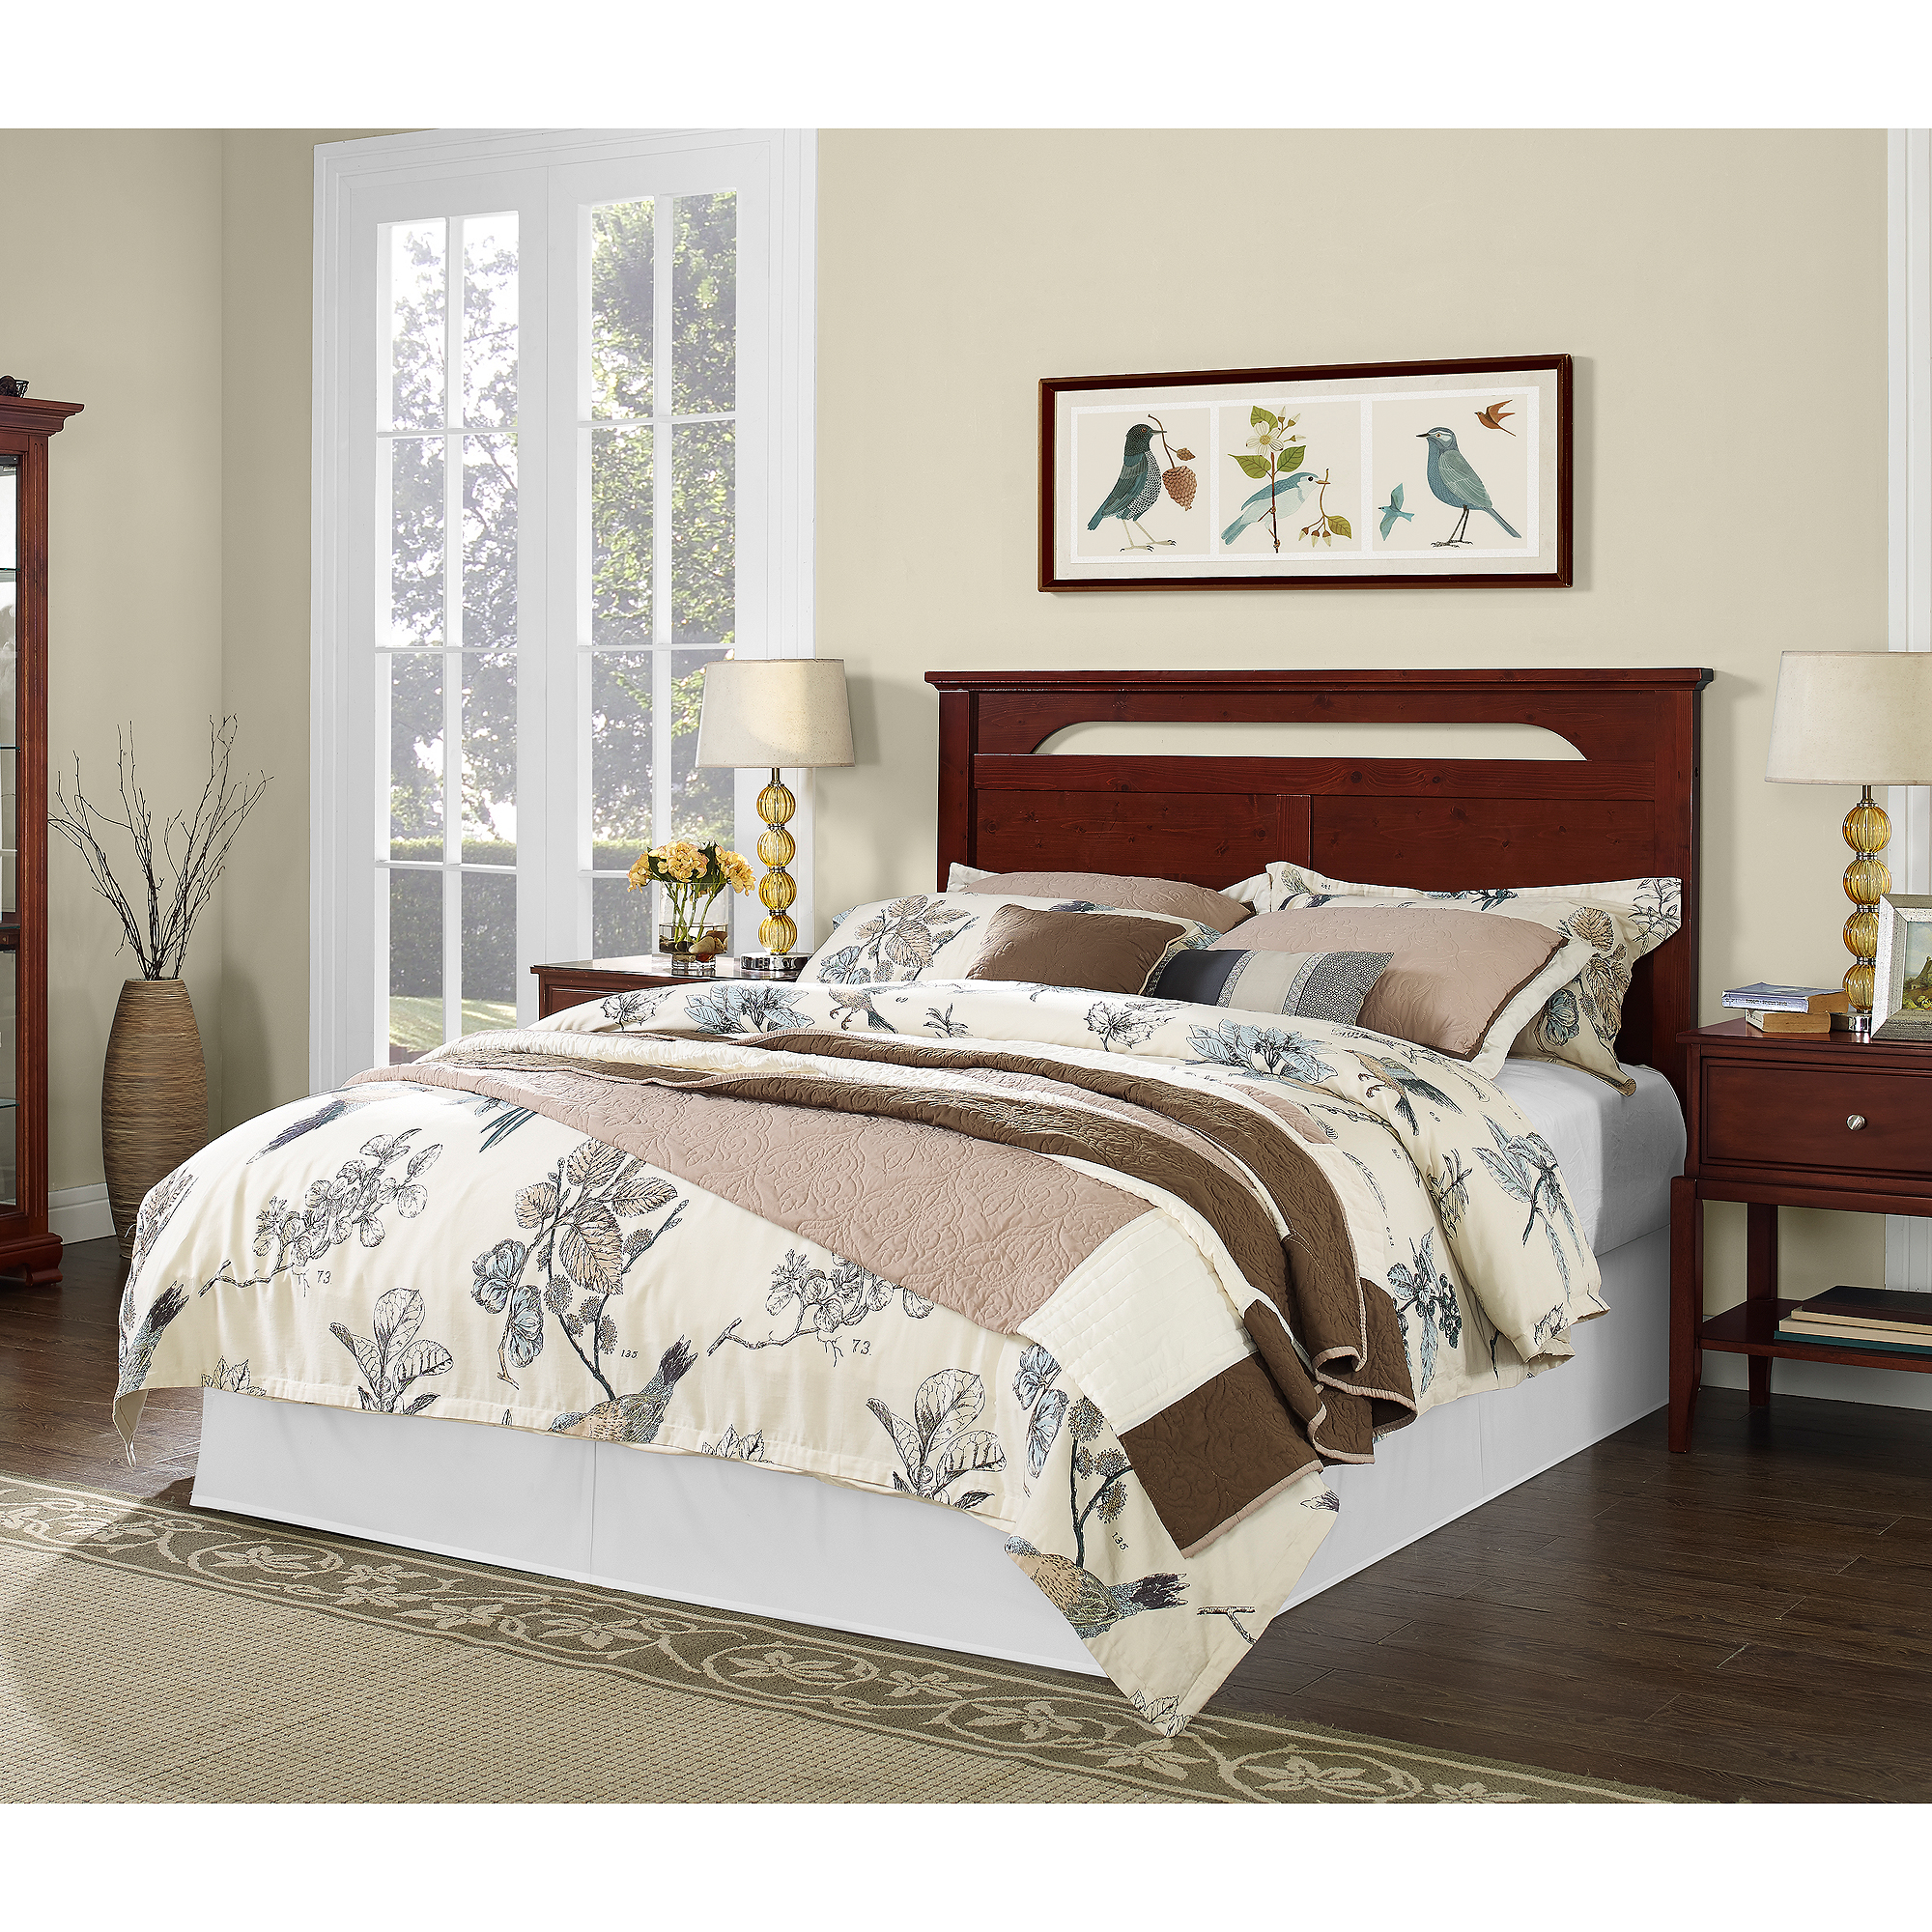 Dorel Living Full/Queen Headboard, Cherry